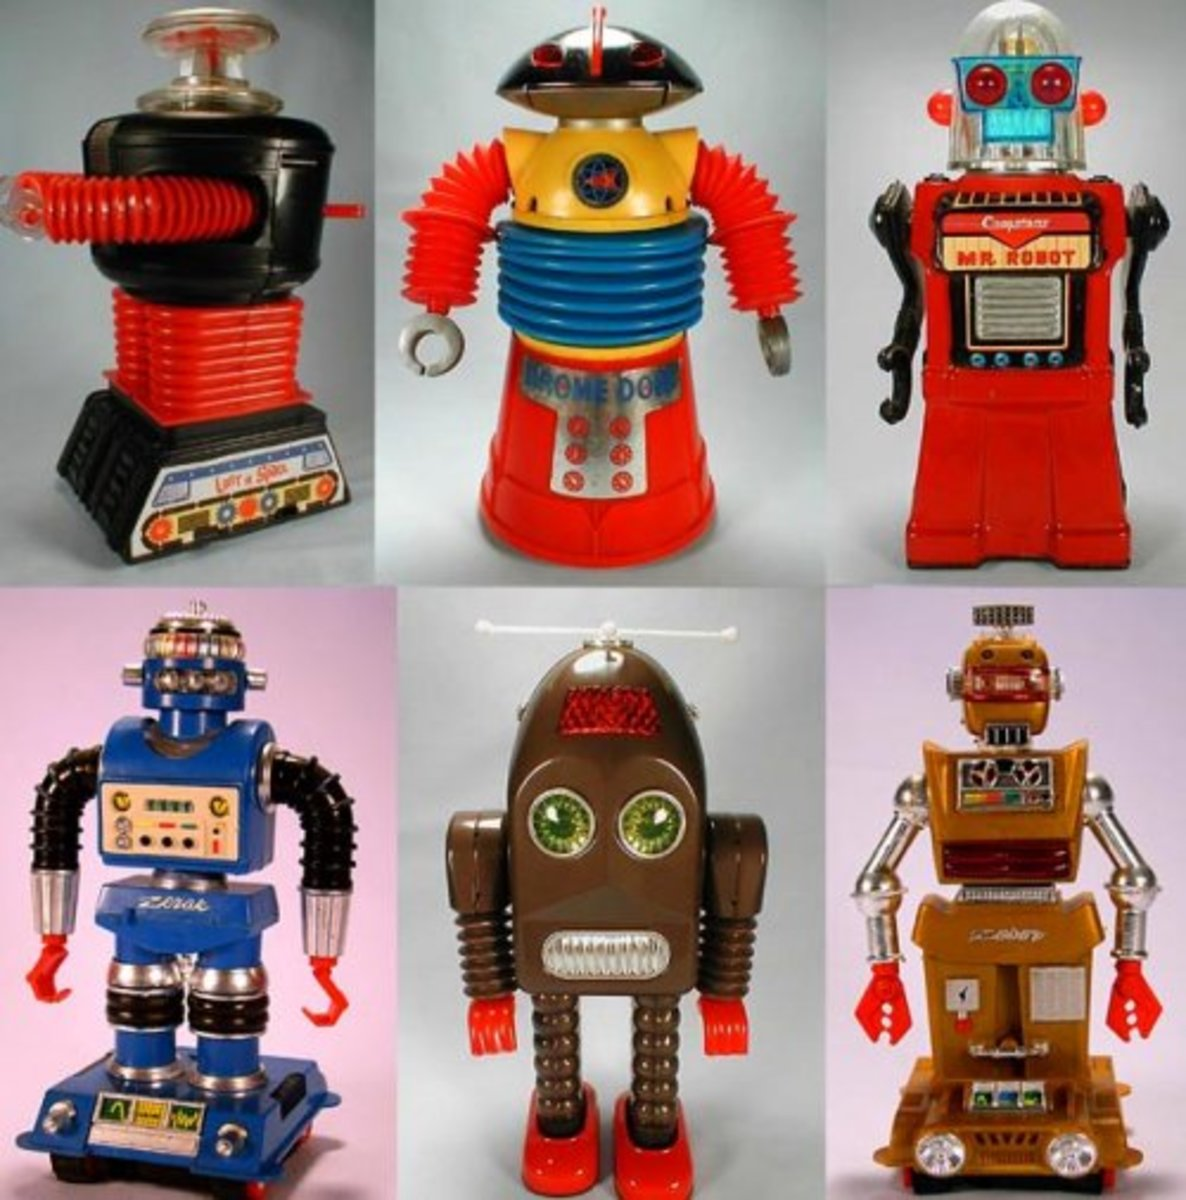 An array of vintage robots from Botropolis